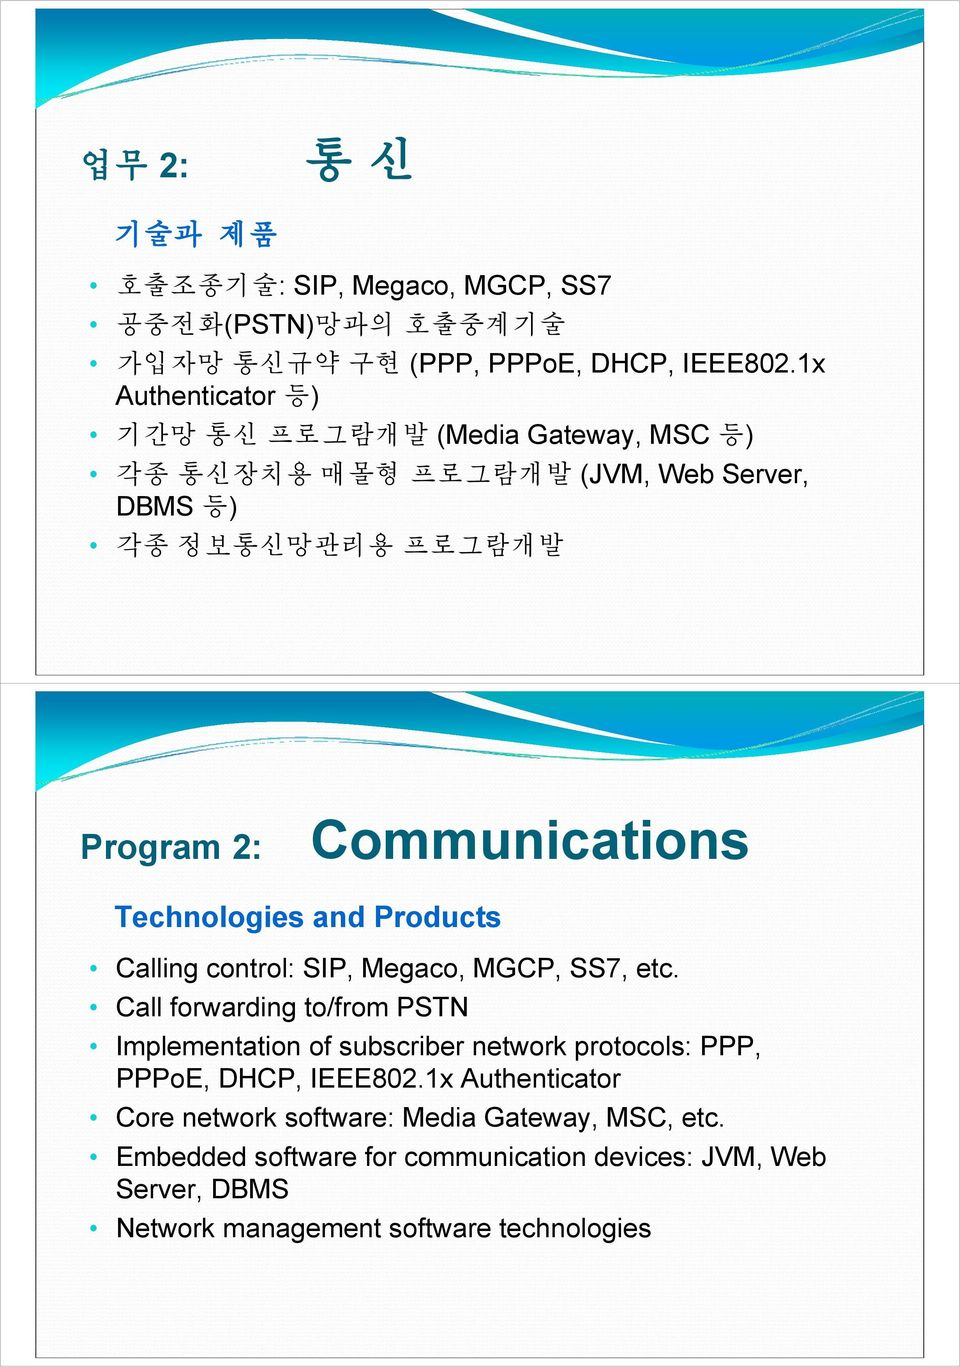 Technologies and Products Calling control: SIP, Megaco, MGCP, SS7, etc.